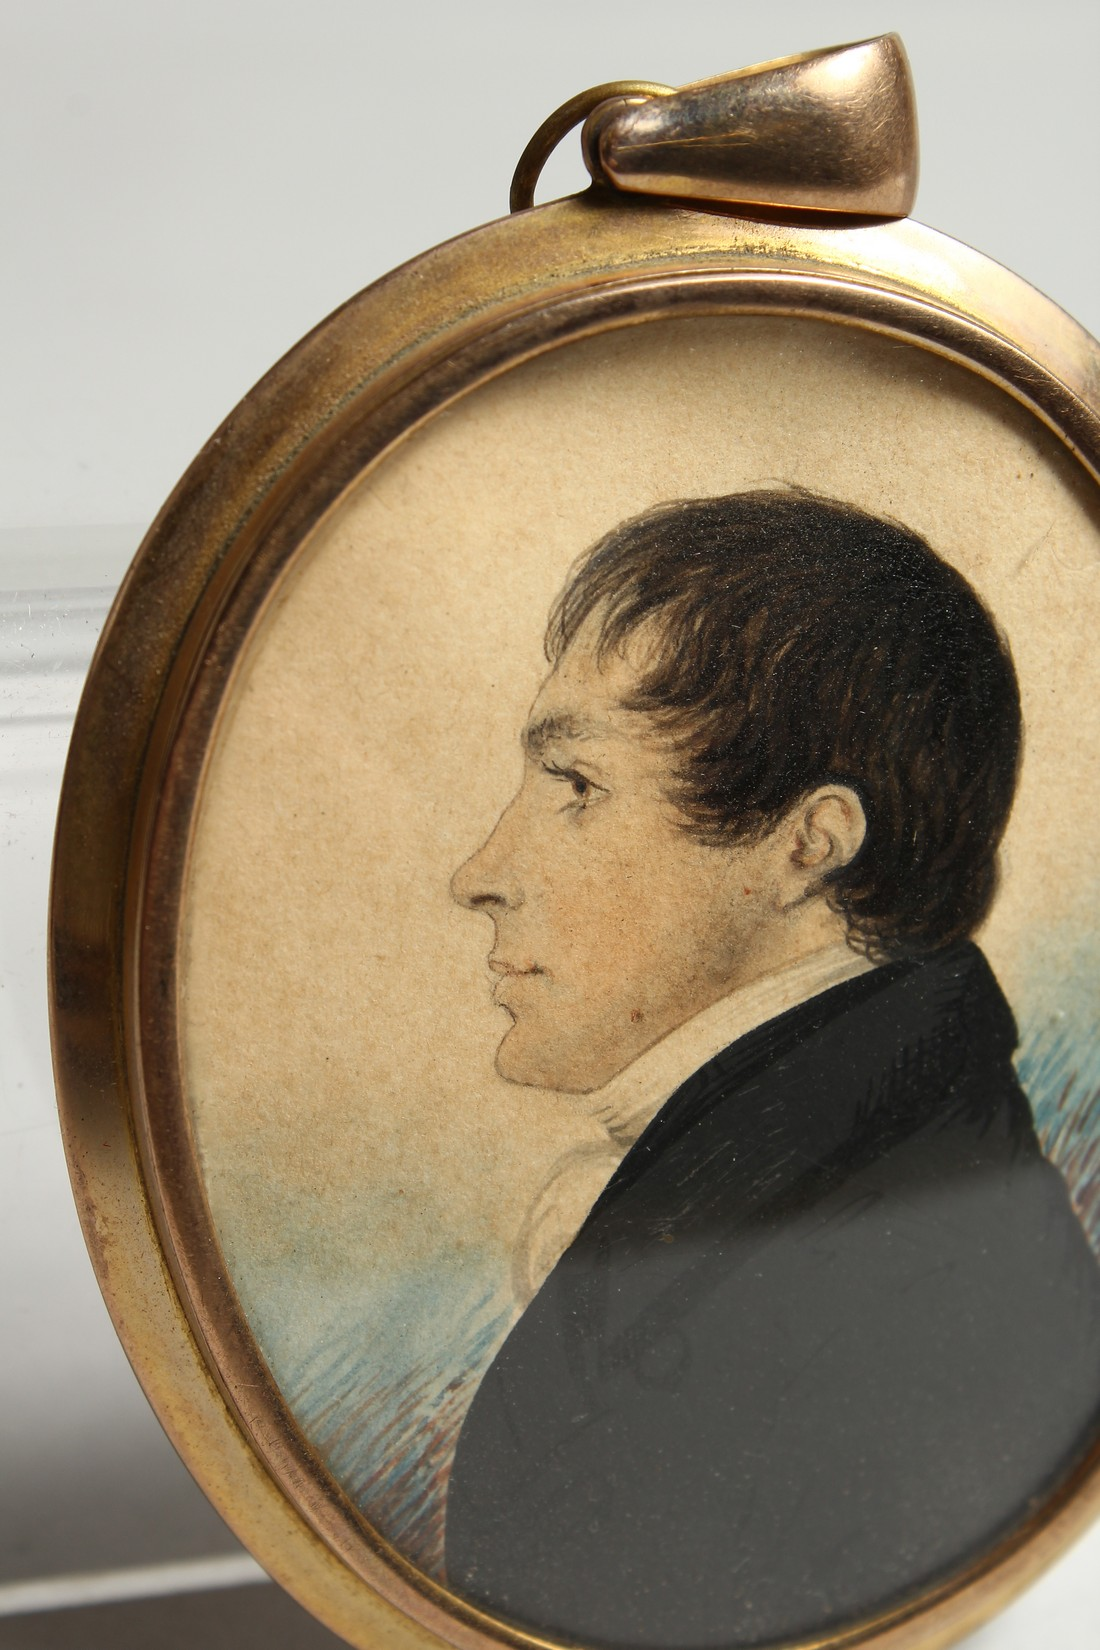 AN EARLY VICTORIAN OVAL MINIATURE OF A GENTLEMAN in a gilt frame. 2.25ins x 1.75ins - Image 3 of 7